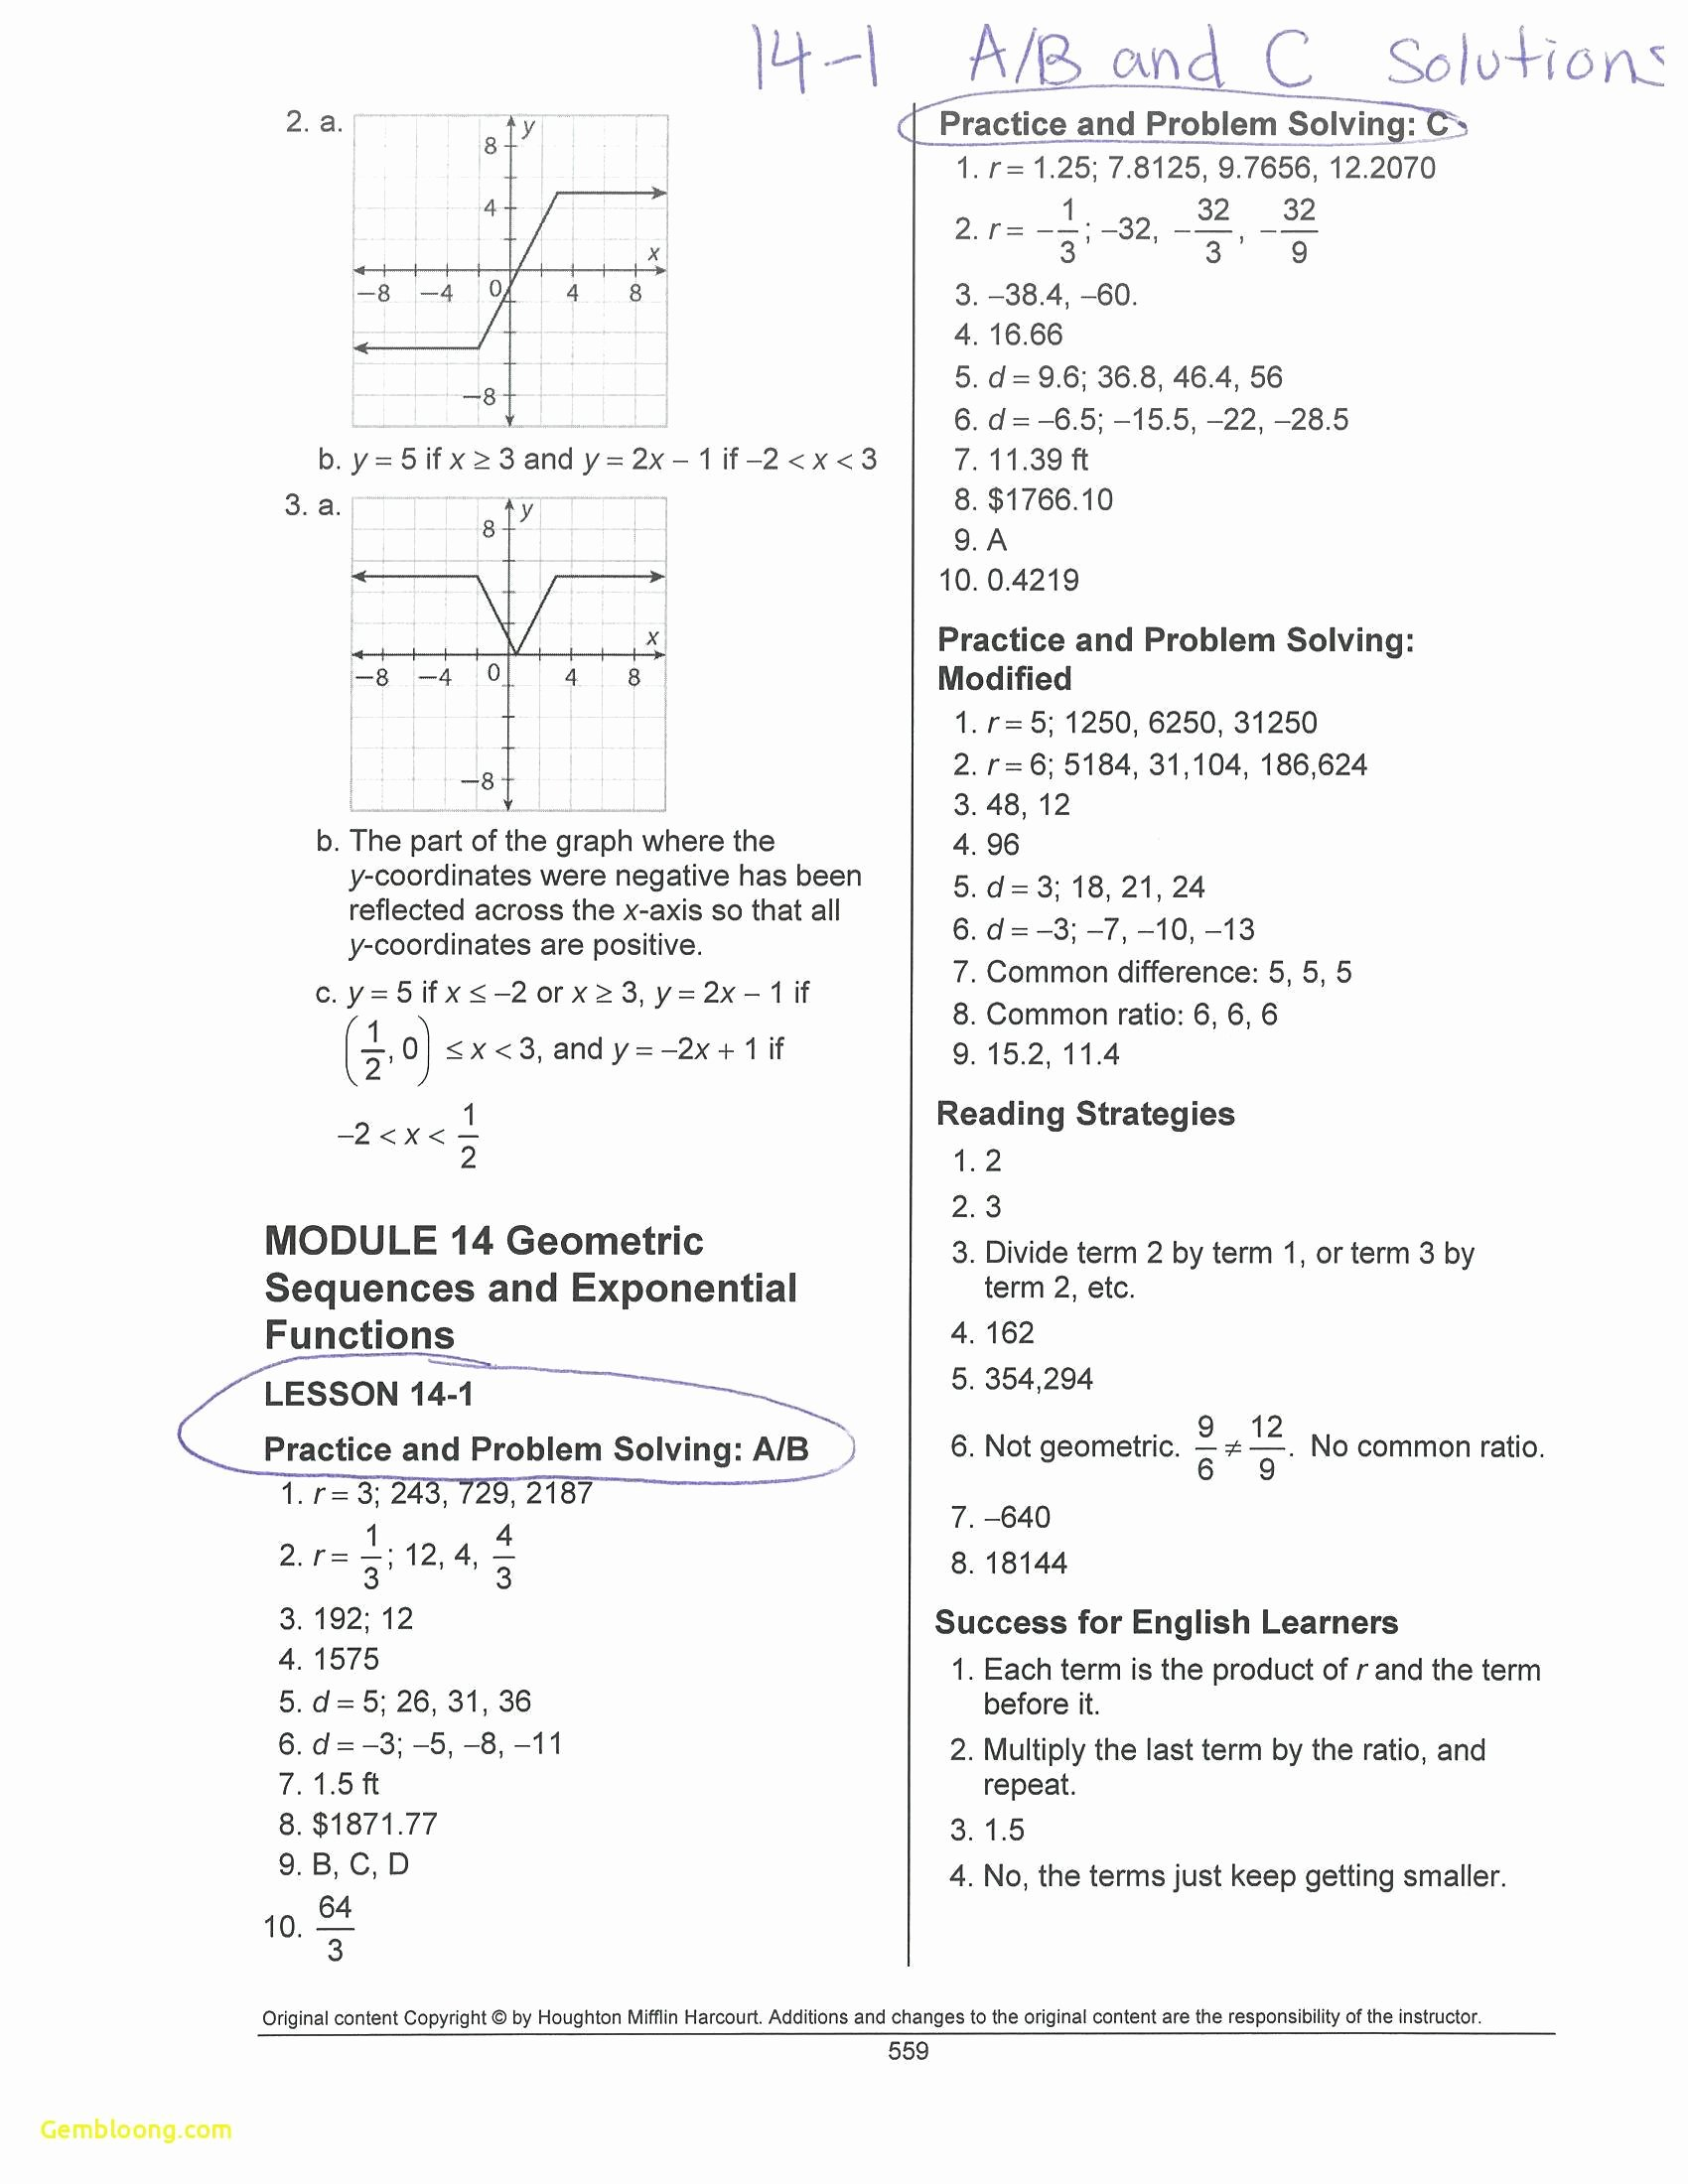 Worksheet Piecewise Functions Answer Key Fresh Piecewise Functions Worksheet 1 Answers